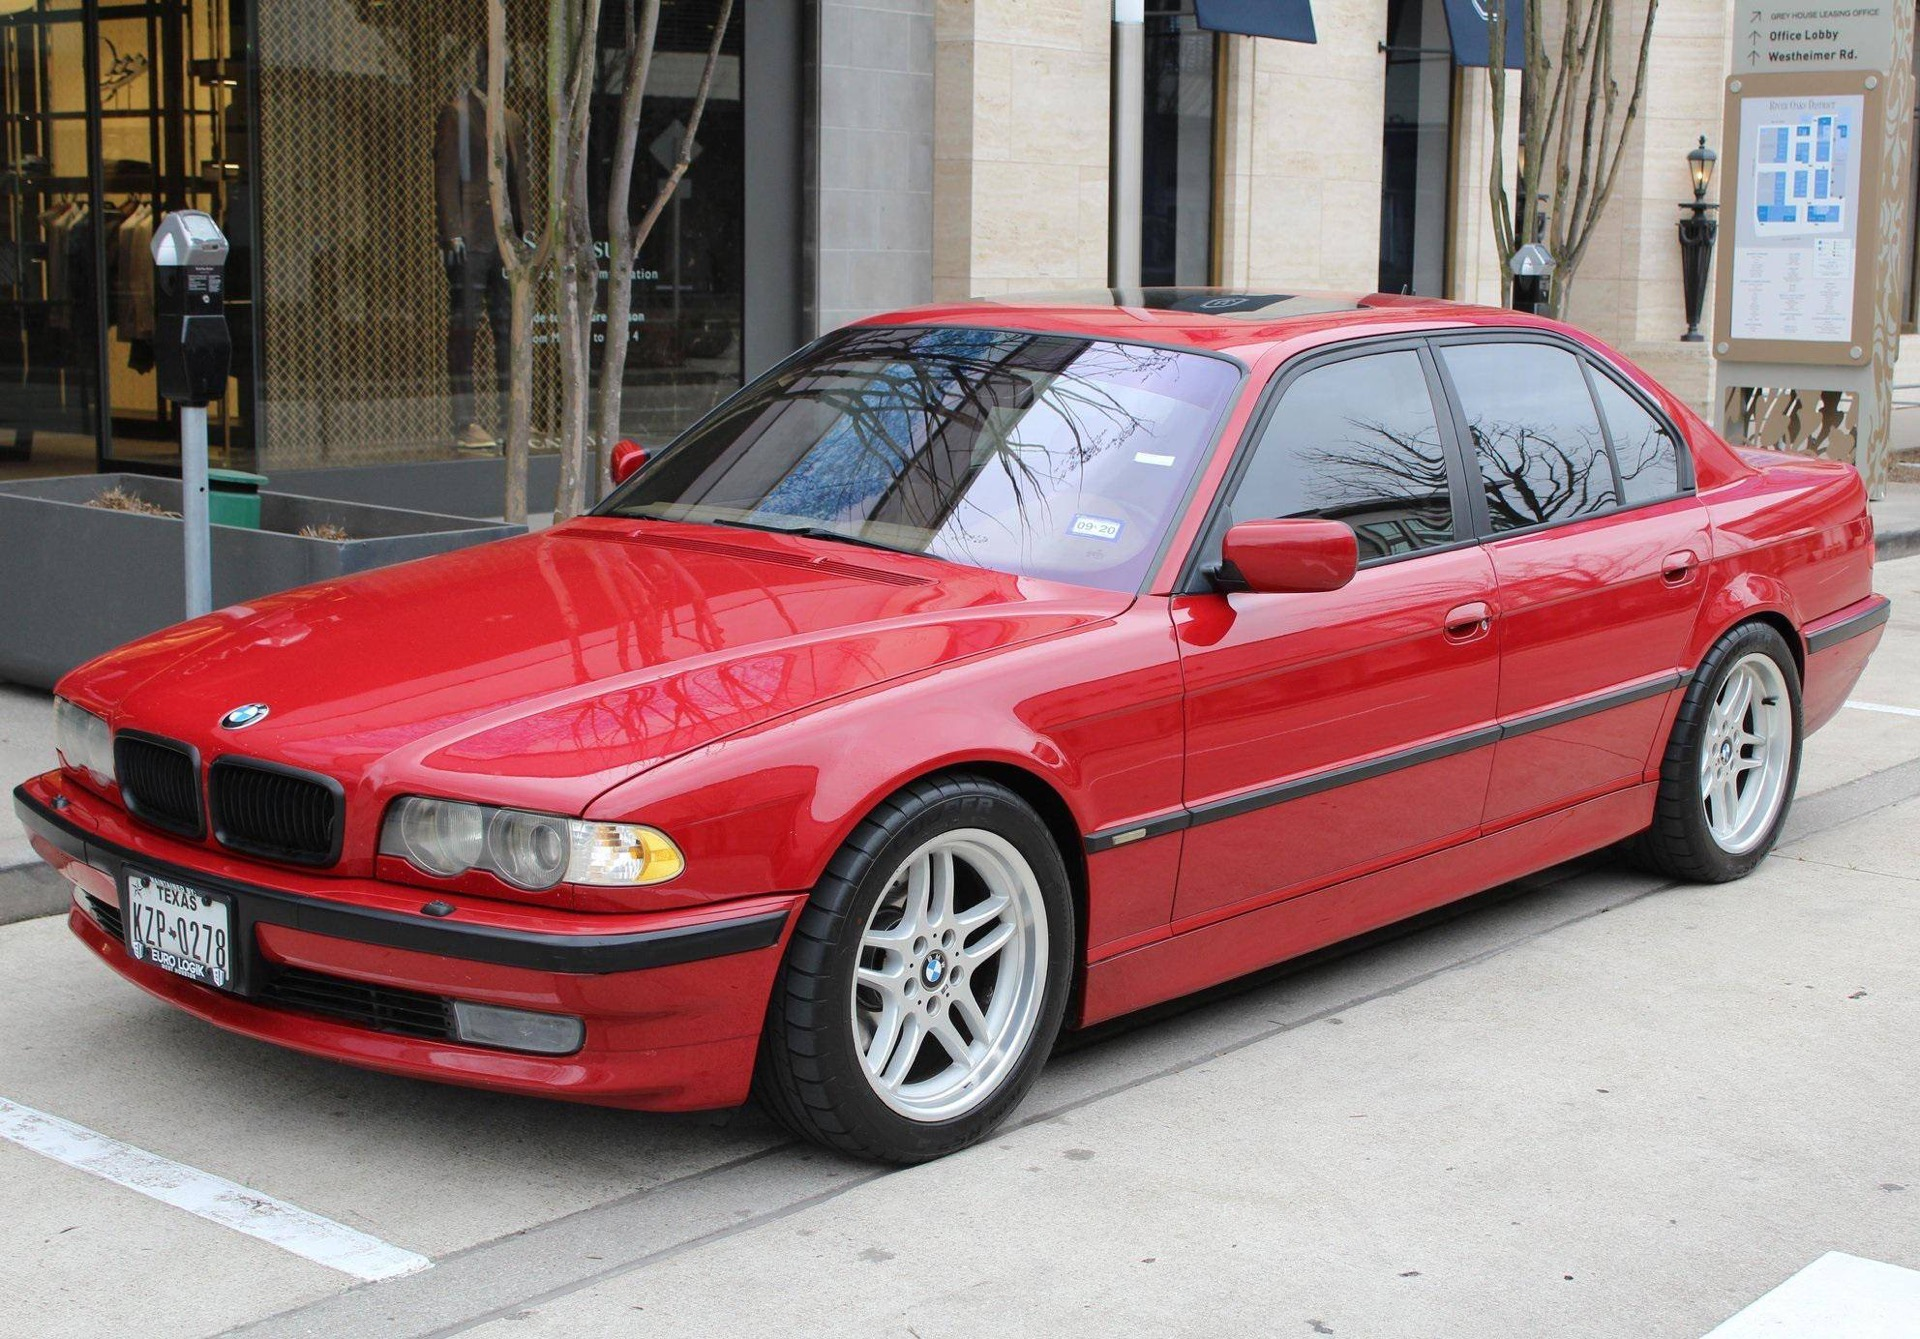 However baffling it is, BMW never gave us a true M7 flagship. Sure, some 7 Series special editions came close, but hardly close enough. This custom-built ride, which is up for sale in the USA, makes you wonder why it never was a production model.